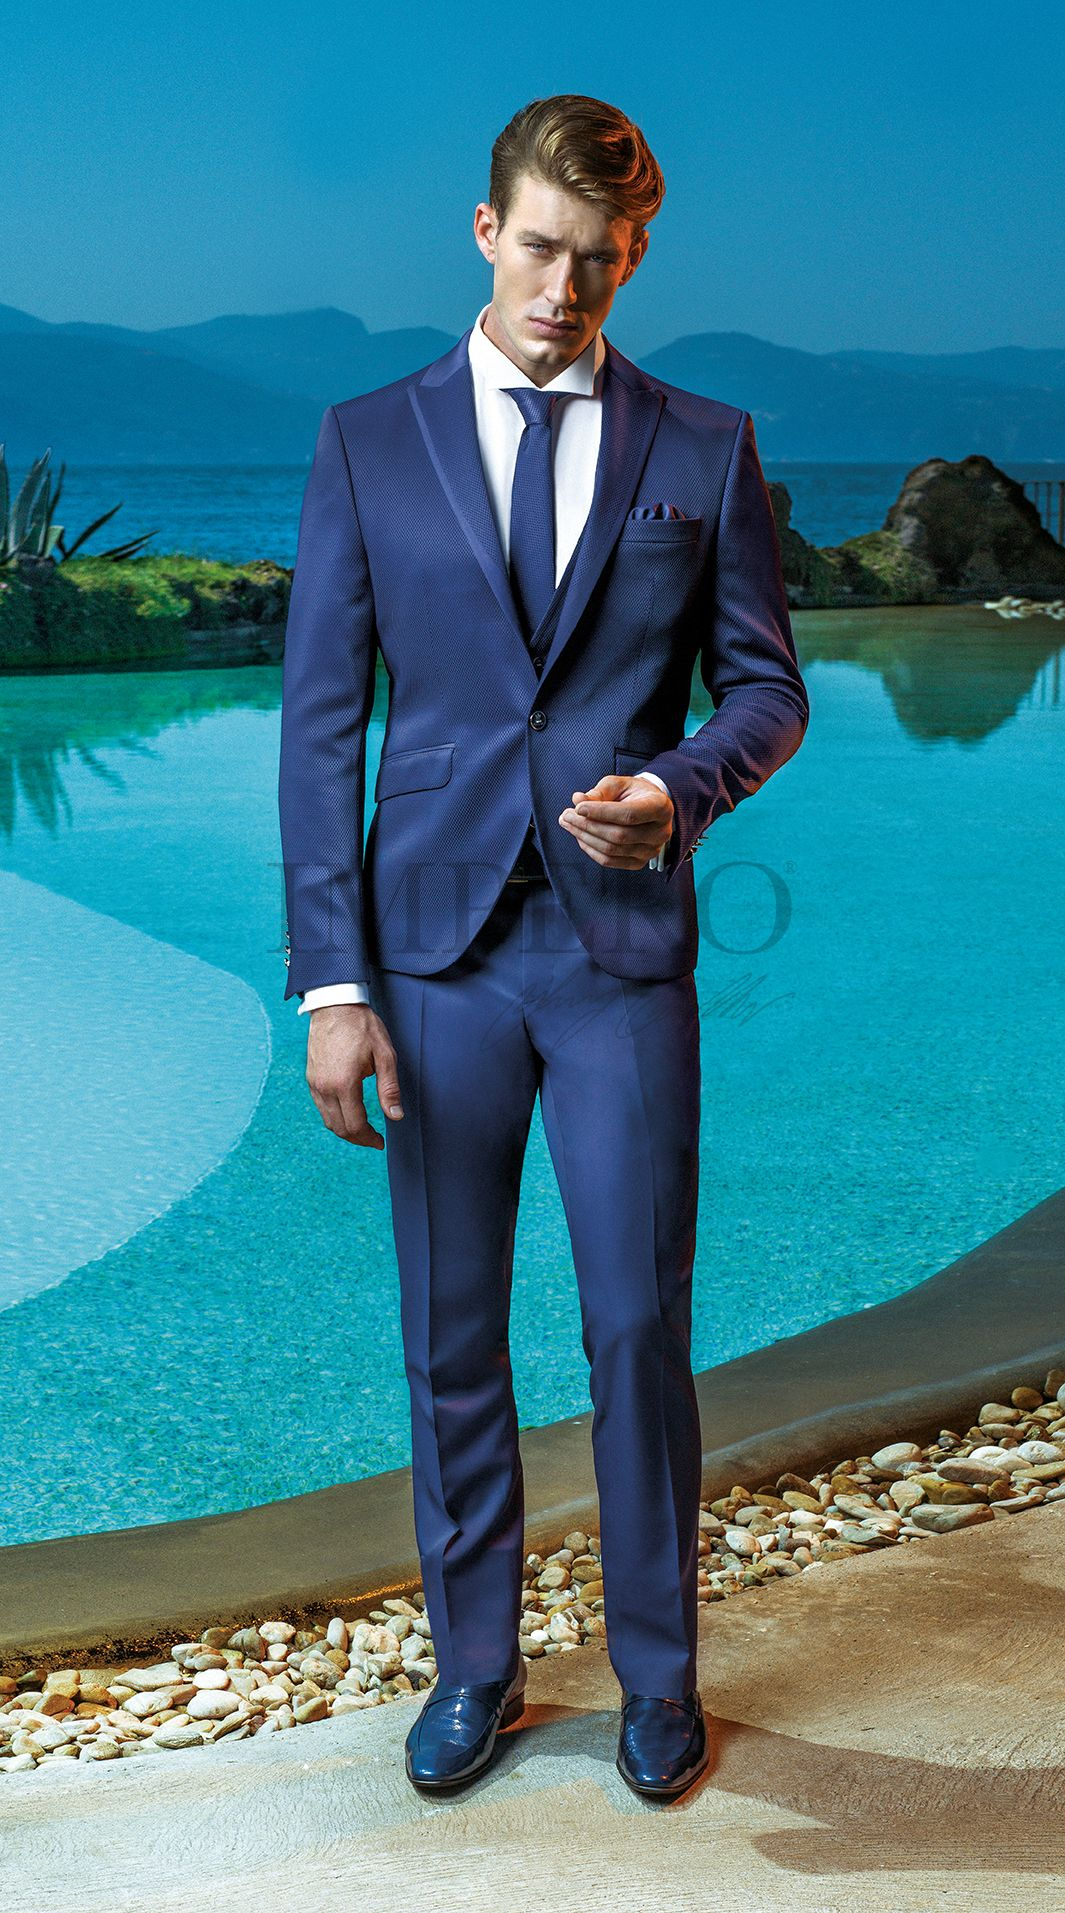 EG 8-17 #sposo #groom #suit #abito #wedding #matrimonio #nozze #blu ...